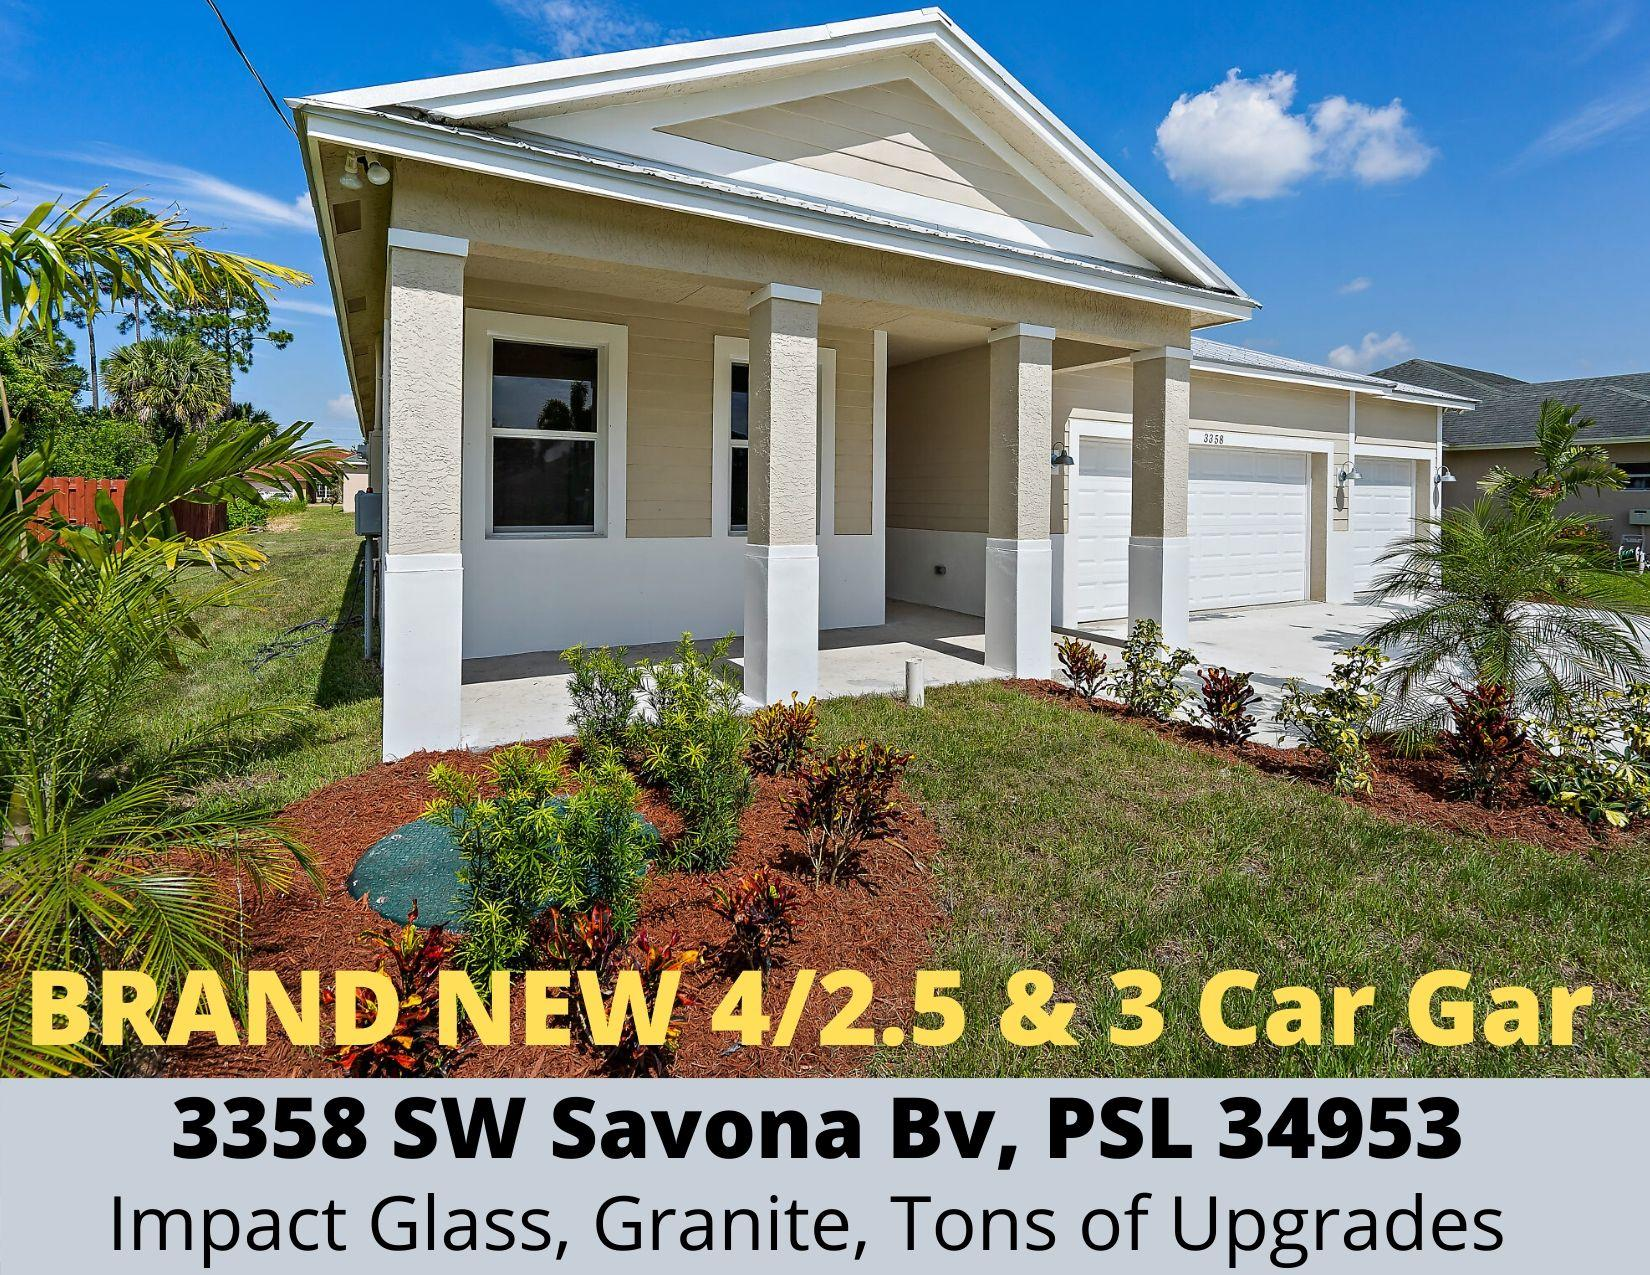 **GORGEOUS MOVE IN READY** BRAND NEW 4 bedroom, 2 & 1/2 bath, 3 car garage concrete home with all the bells & whistles. Metal roof, energy efficient with impact glass & spray foam insulation, granite counters & porcelain tile thru-out, stainless appliances, open floor-plan w/ 9' ceilings, lots of closets & storage, covered patio, city water/sewer! MUST SEE & BUY BEFORE ITS GONE!